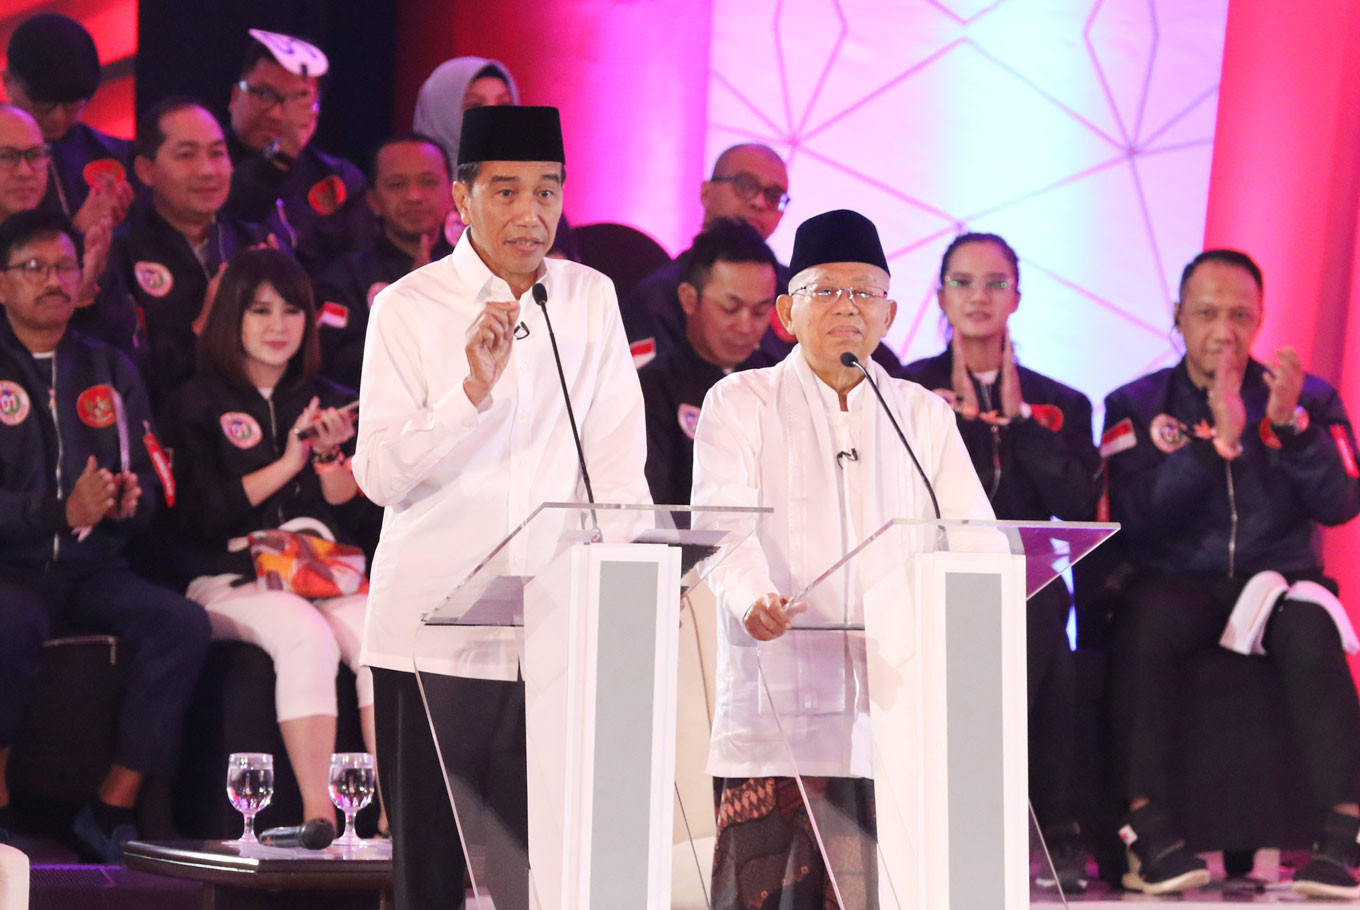 Jokowi plays it tough, accusing Prabowo of 'outbursts of lies'